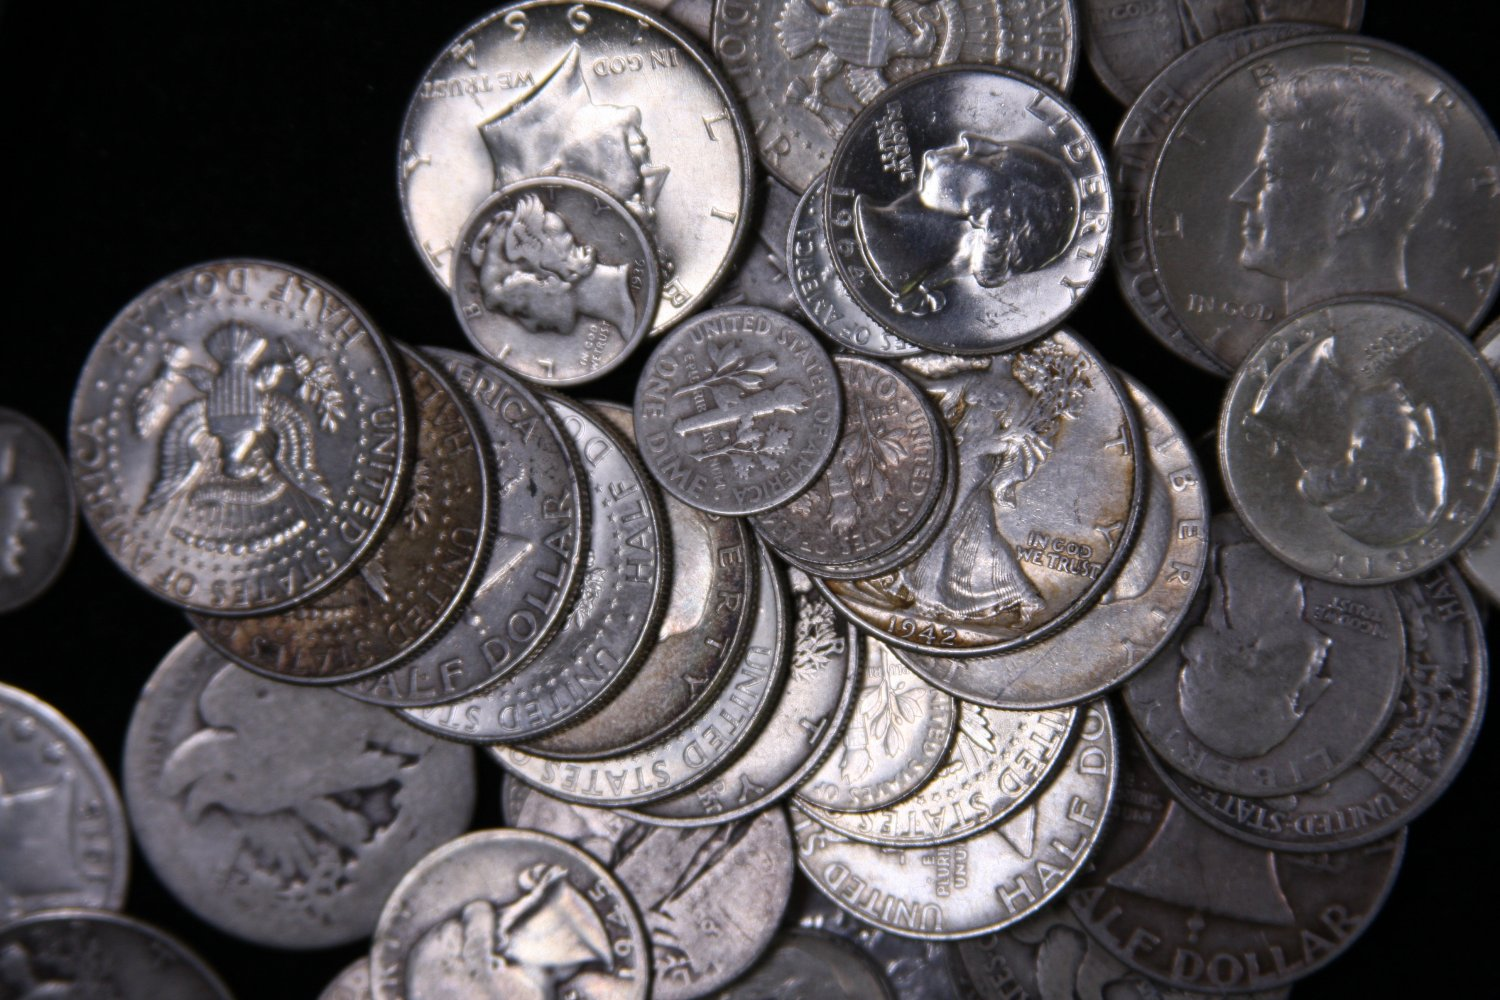 $1 Face Value 90% Silver Sale.  2 Half Dollar's.  1964 and Prior U.S. Minted Coins.